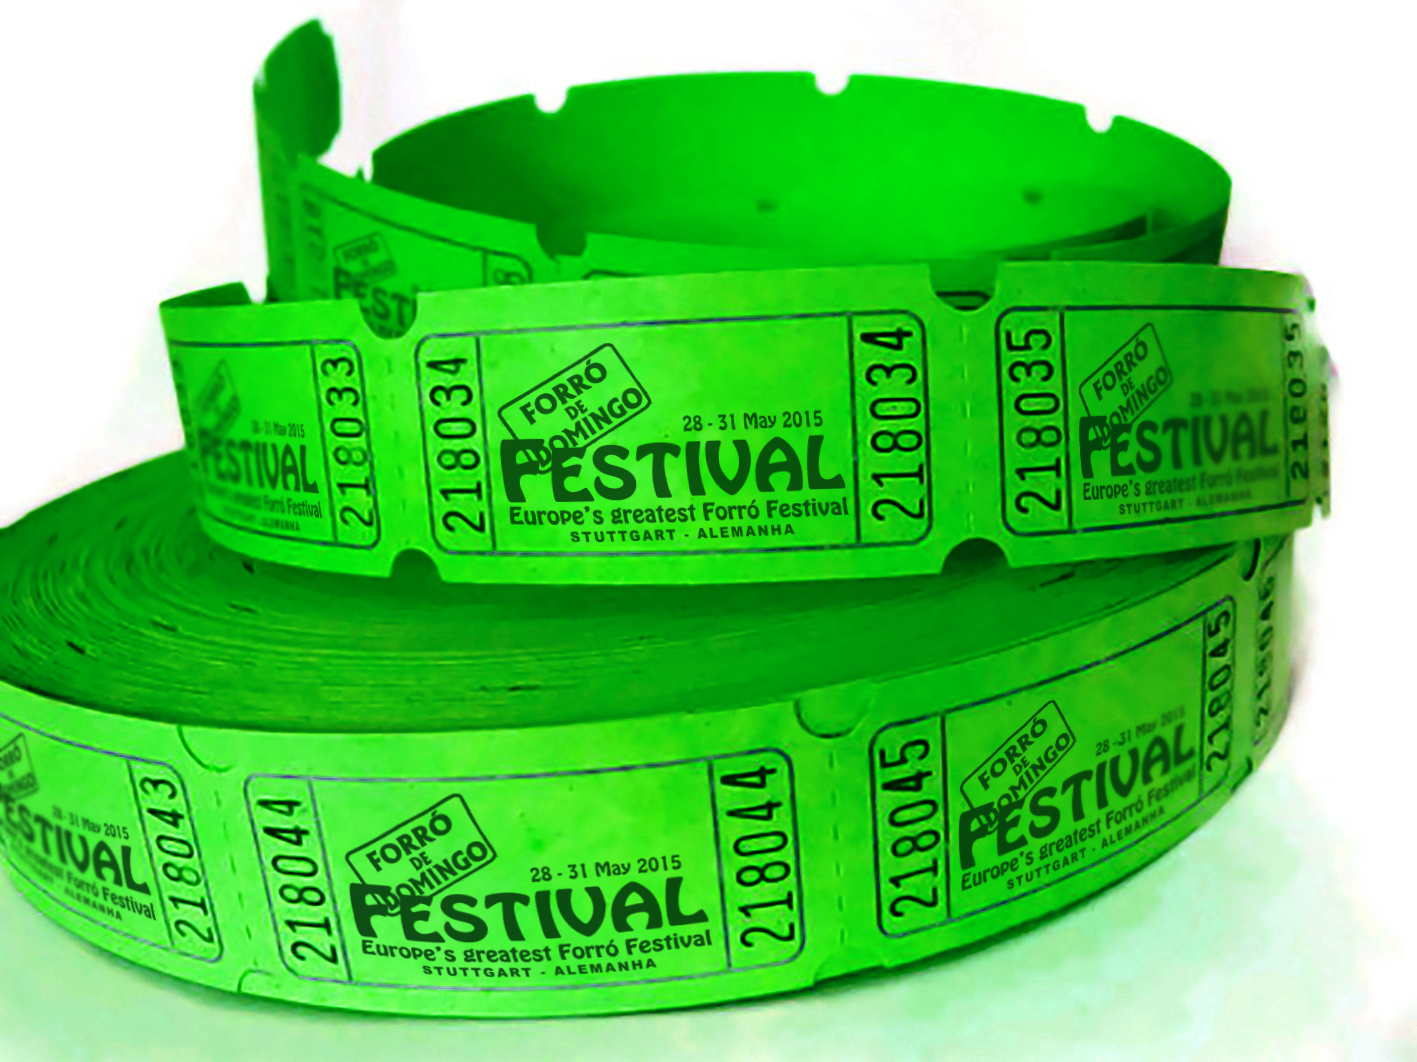 https://forrofestival.com/wp-content/uploads/2015/01/FdD-ticket_1-dia.jpg